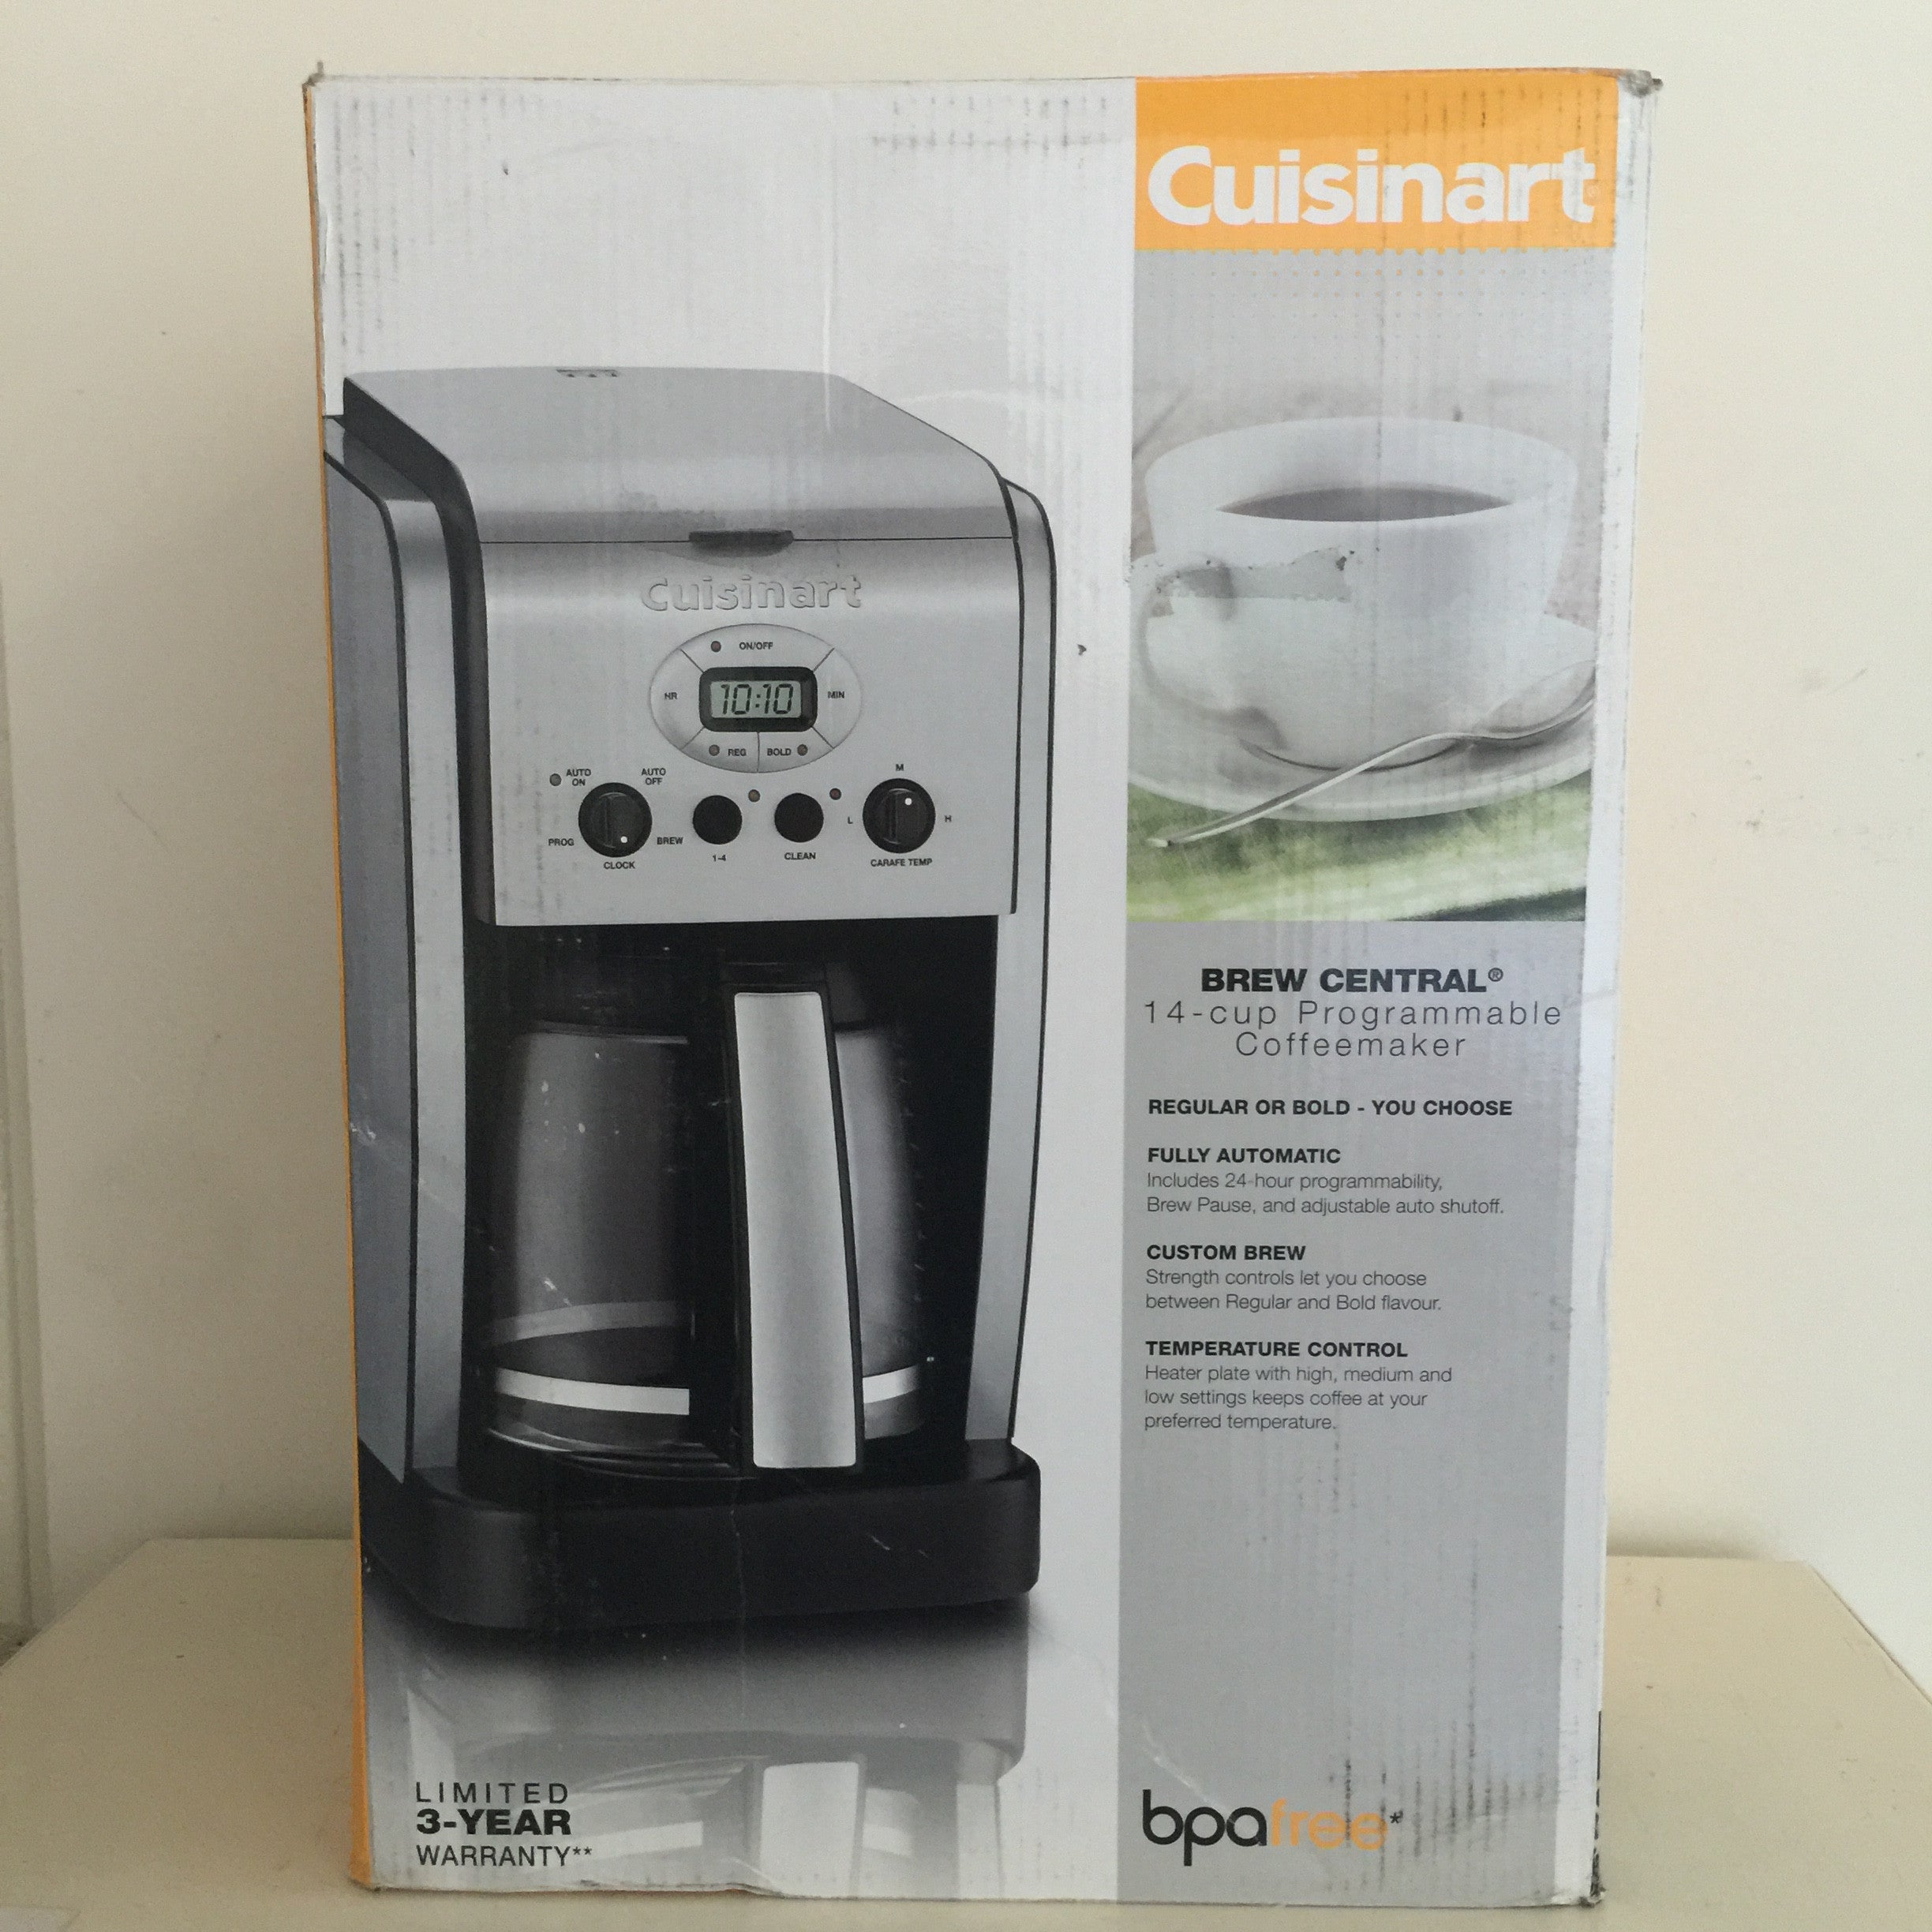 Cuisinart CBC-14 Brew Central 14-Cup Coffeemaker - Chrome - Refurbished